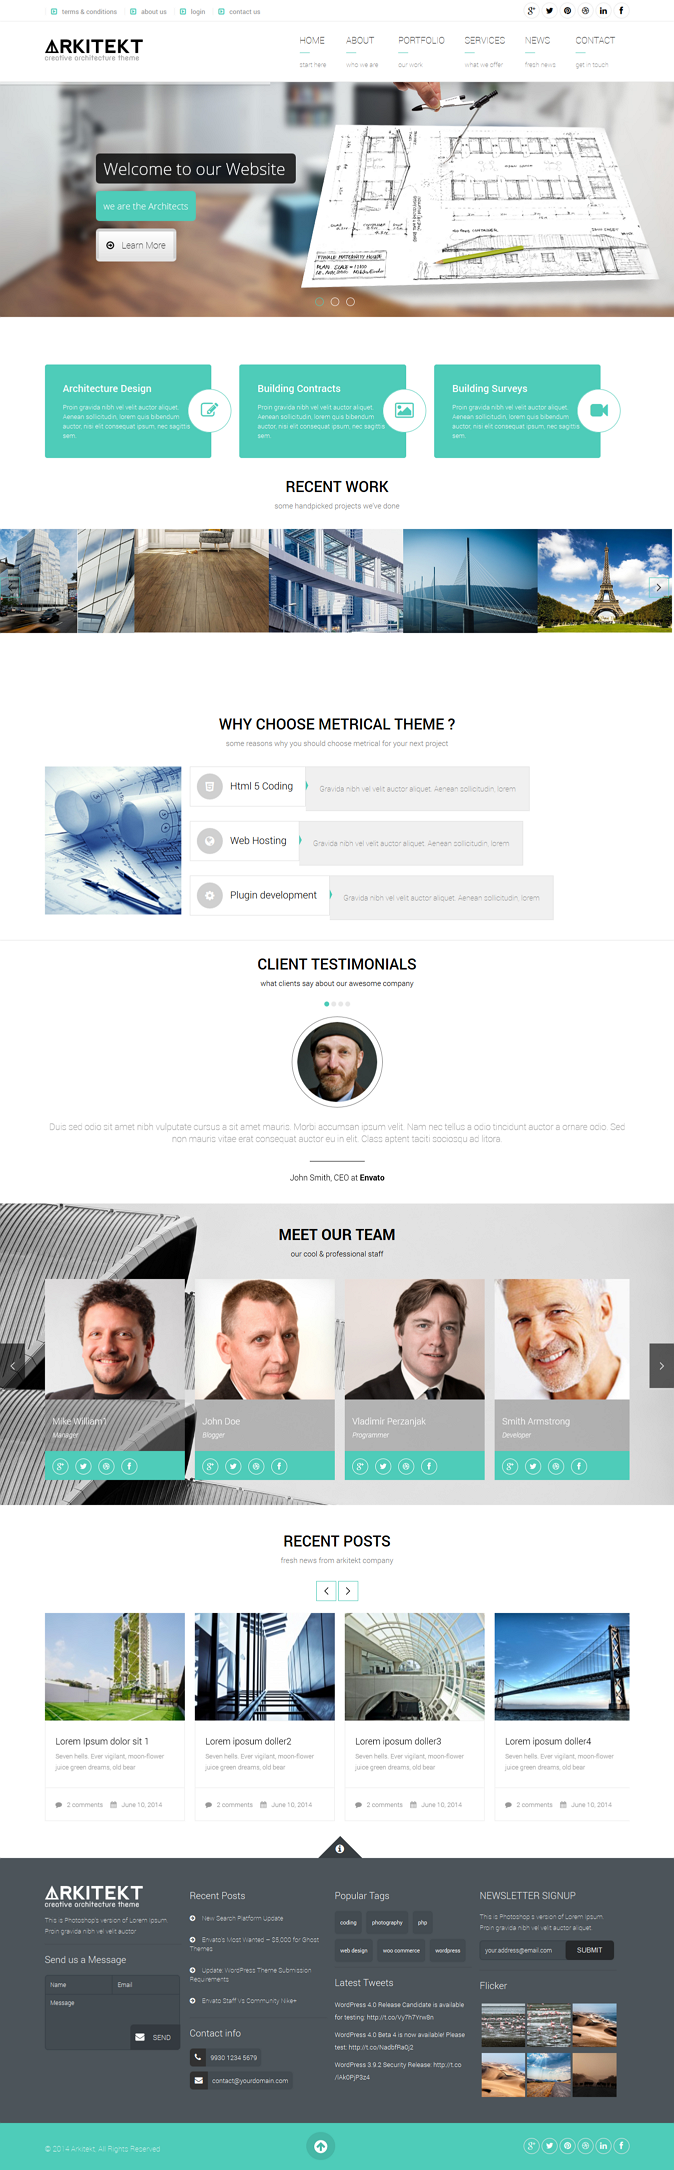 Arkitekt is a WordPress theme that you can use for your architect business. This theme is perfec ...